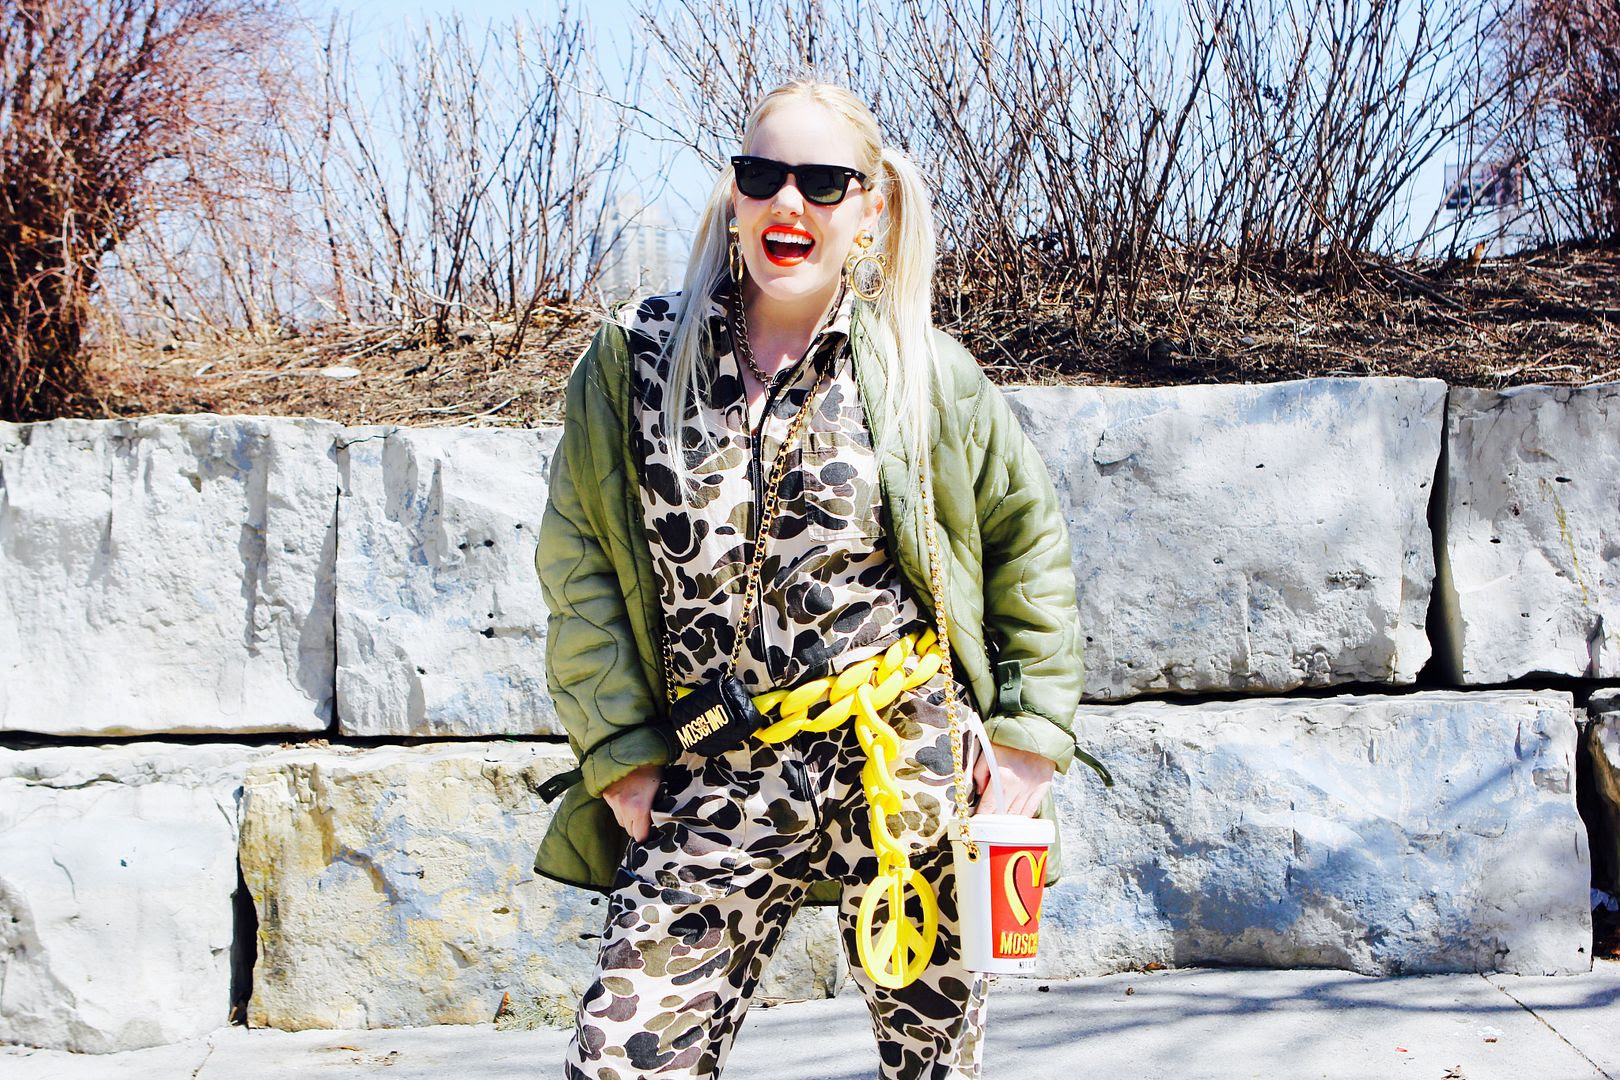 photo camouflage-armyoutfit-peace-anniversary-camo-beckermantwins_zps7x5ewrd3.jpg